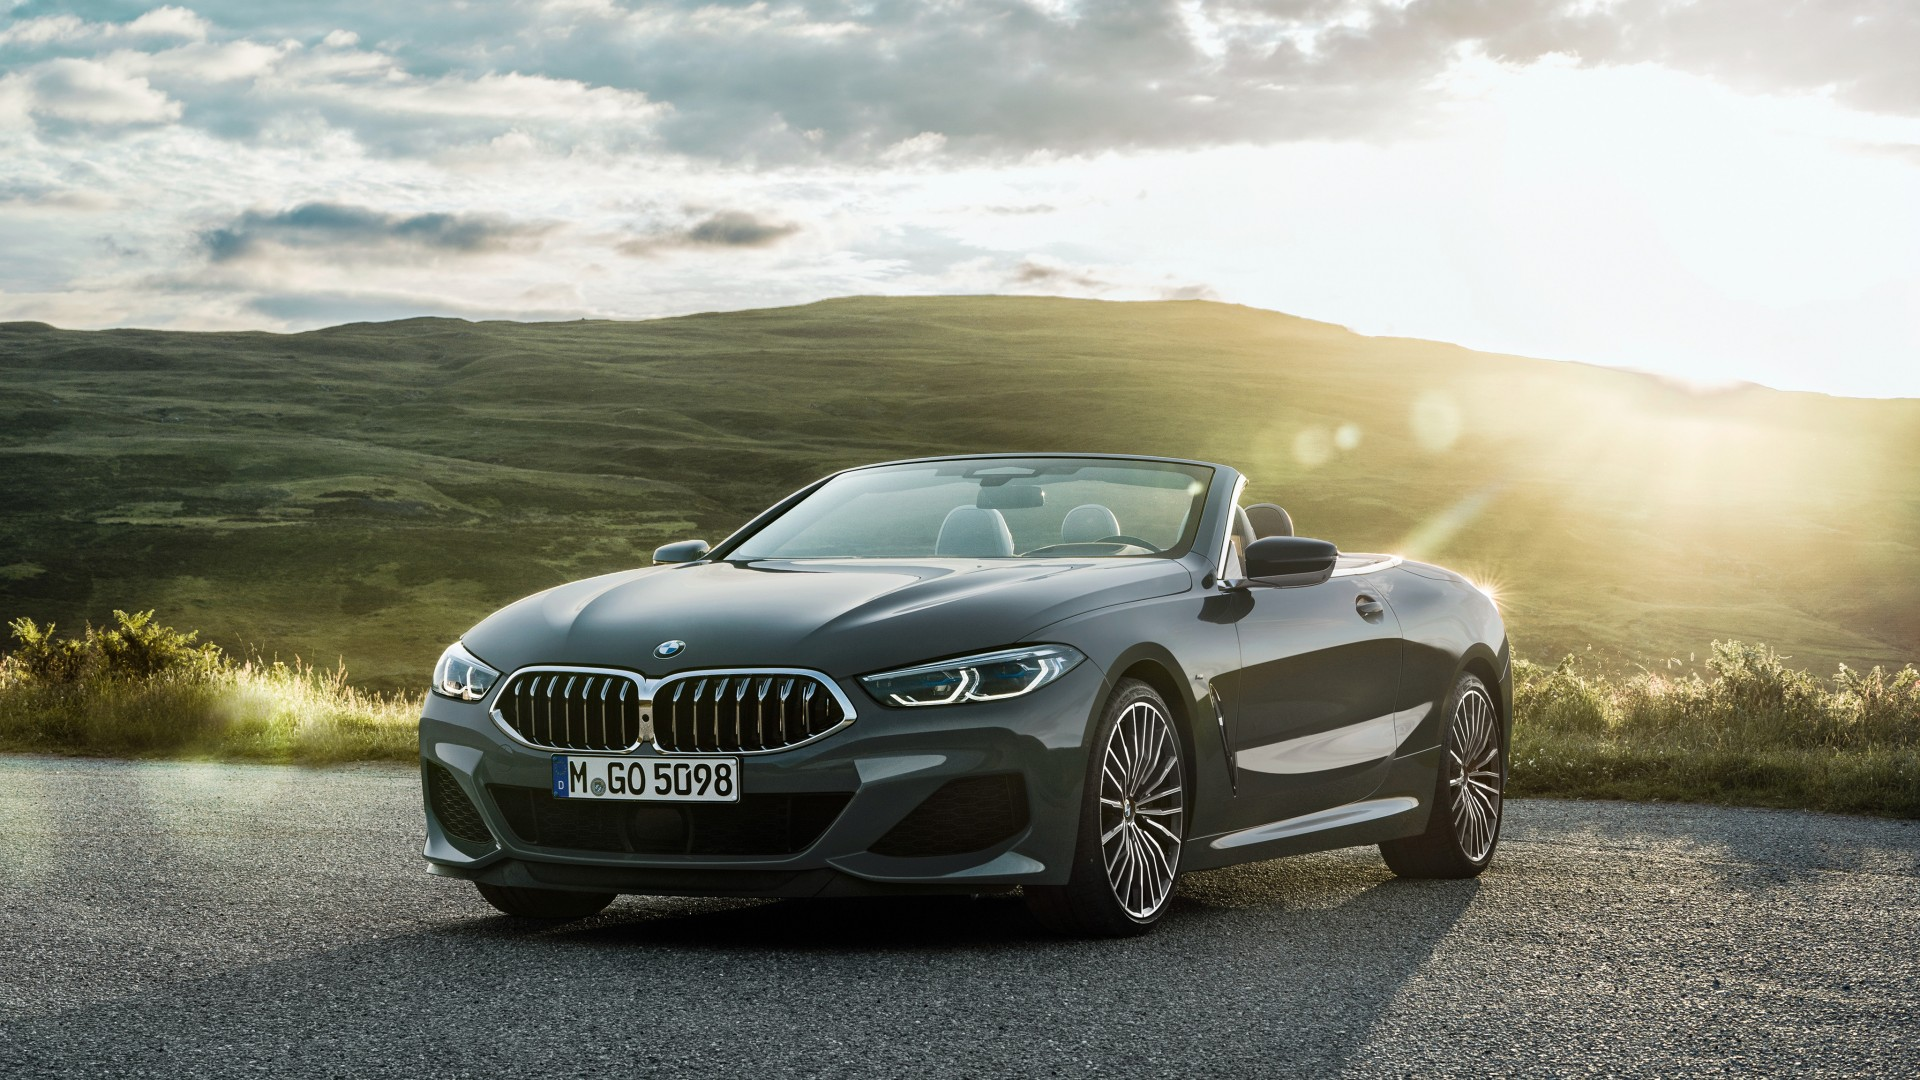 Bmw M850i Xdrive Cabrio 2018 4k Wallpaper Hd Car